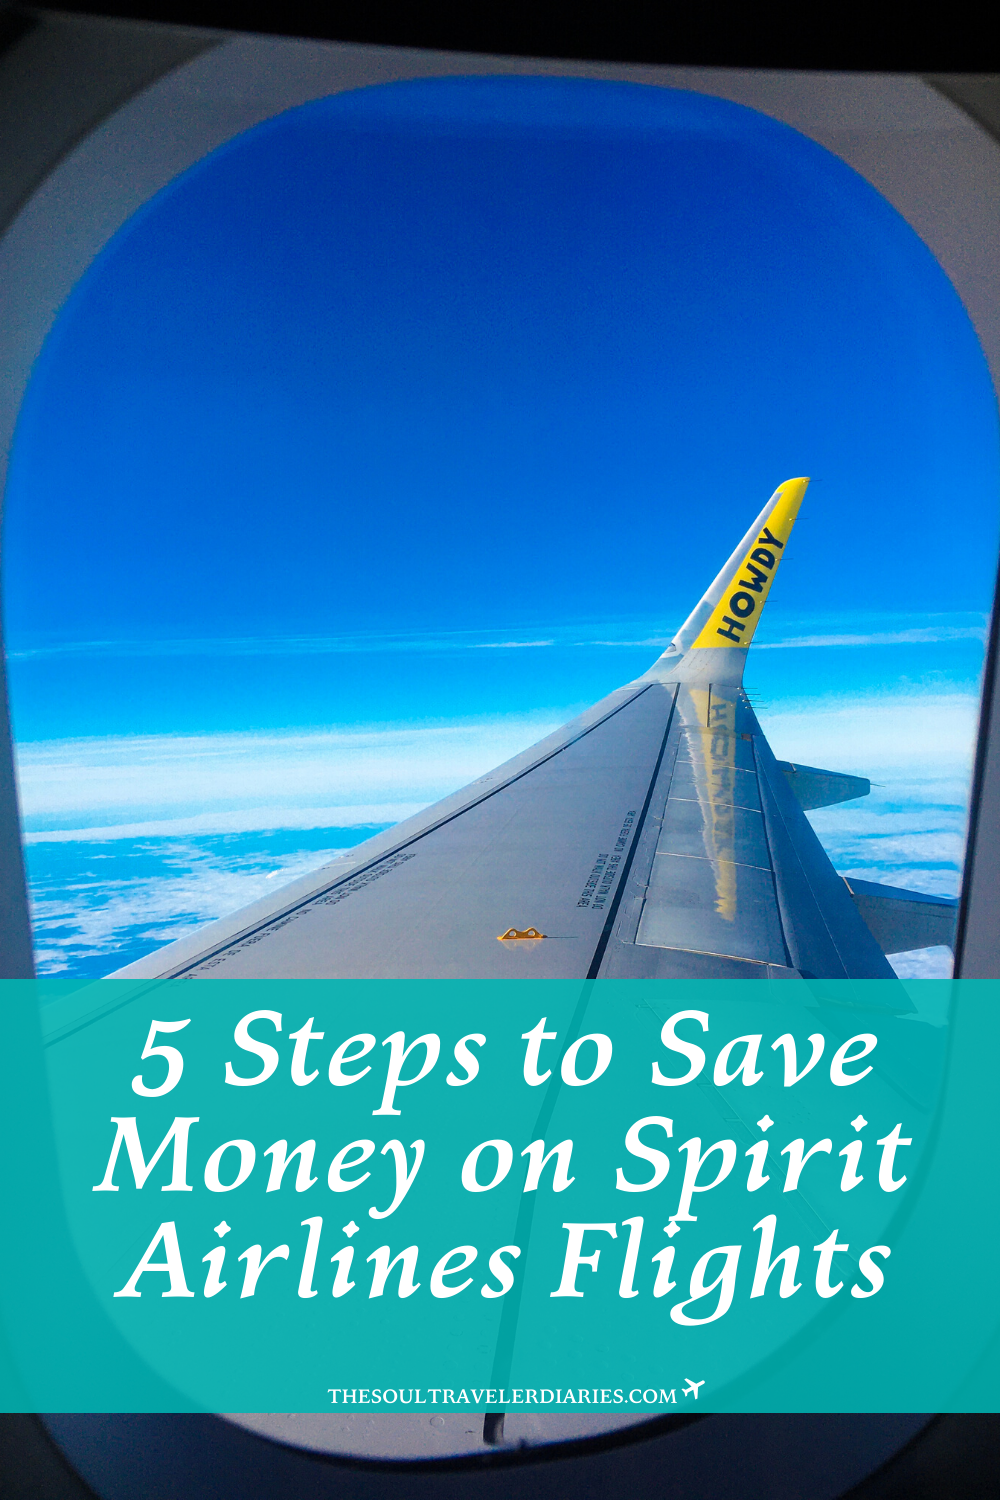 5 steps to help you save even more money when flying with the budget airline - Spirit Airlines. Simple tips to get 20-50% of your flights. #budgetairlines #budgettraveltips #cheapflightdeals #budgettravelhacks